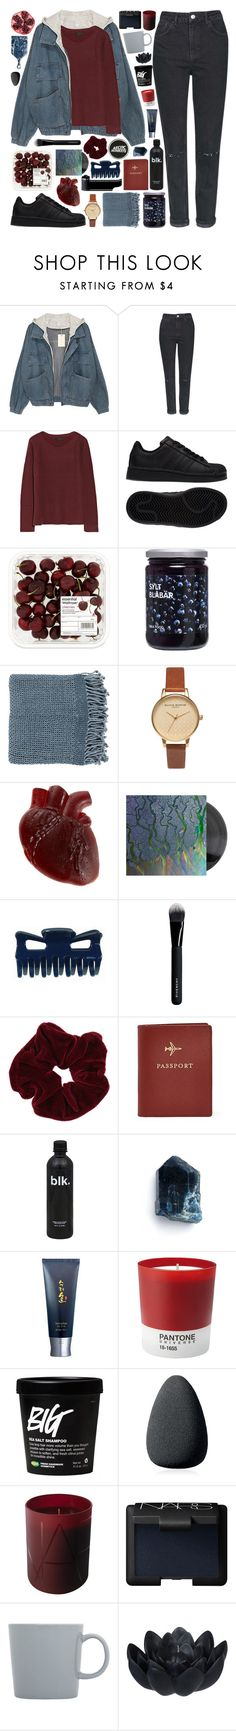 """BITTER IRONY"" by doubting ❤ liked on Polyvore featuring Topshop, The Row, adidas, Surya, Olivia Burton, Givenchy, Miss Selfridge, FOSSIL, Sooryehan and Pantone"